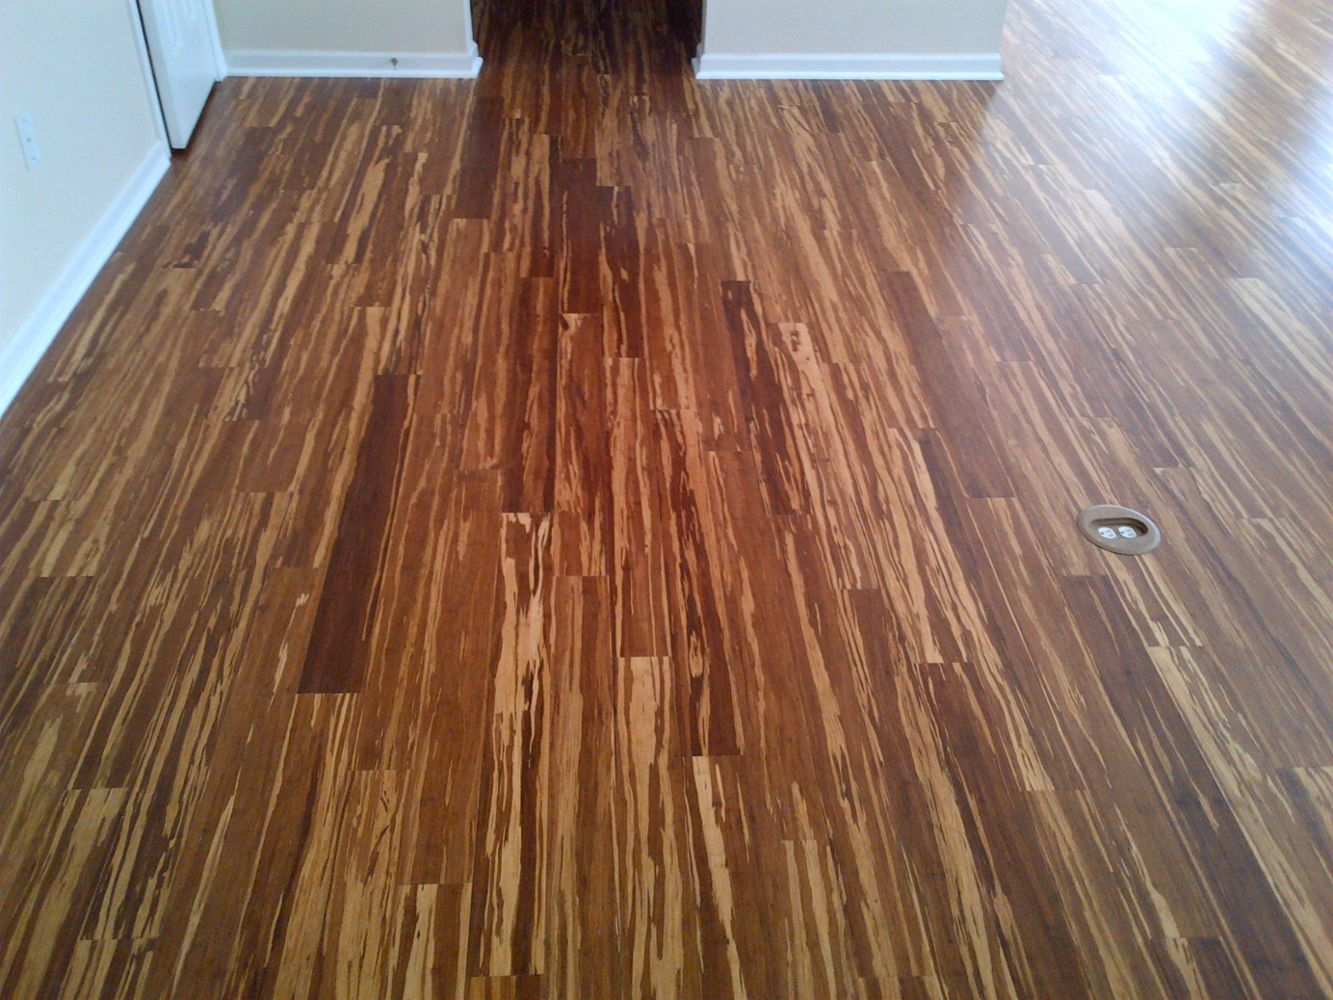 Hardwood Flooring Installation Sanding Refinishing Experts In Charlotte Nc The Giant Co